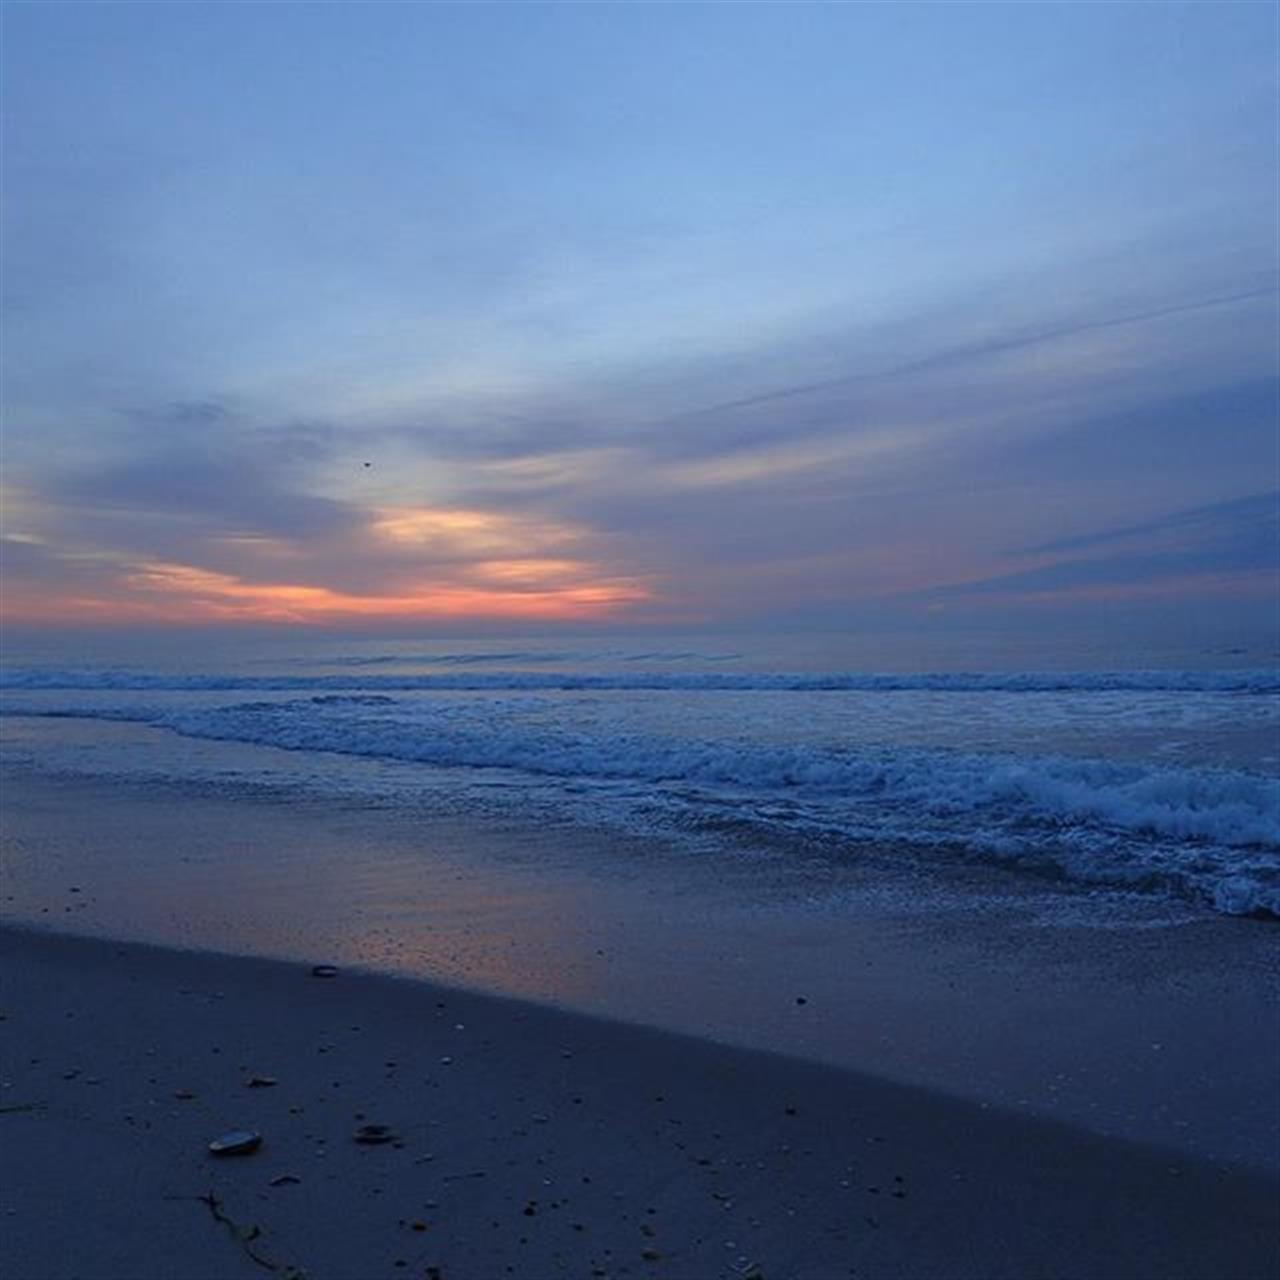 Life's a beach, among other things... :-) Have a good day! #sunrise #goodmorning #goodday #nj #beaches #jshn